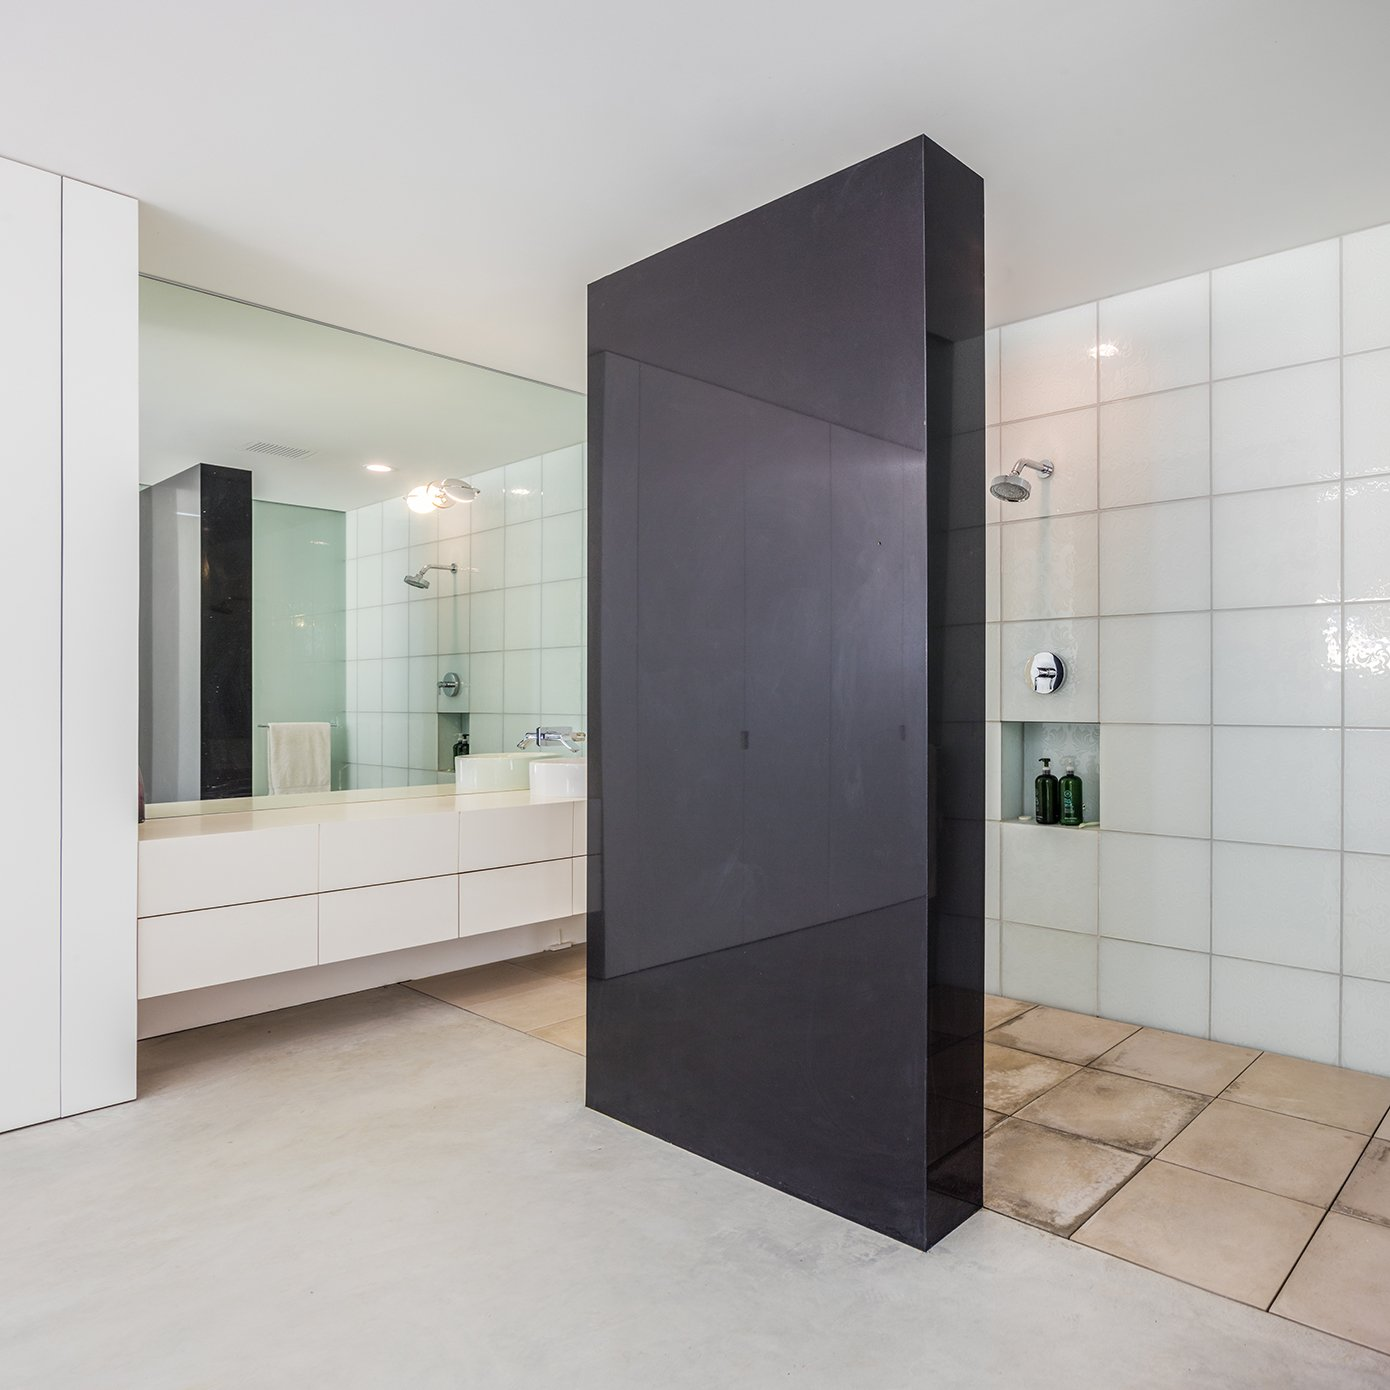 Bath Room, Open Shower, Full Shower, and Vessel Sink The master suite features a monolithic wall of quartz to separate the shower from the rest of the room. - Cupertino, California Dwell Magazine : September / October 2017  bains from The Conversation Pit Makes a Much-Appreciated Comeback at an Ultramodern Home in Cupertino